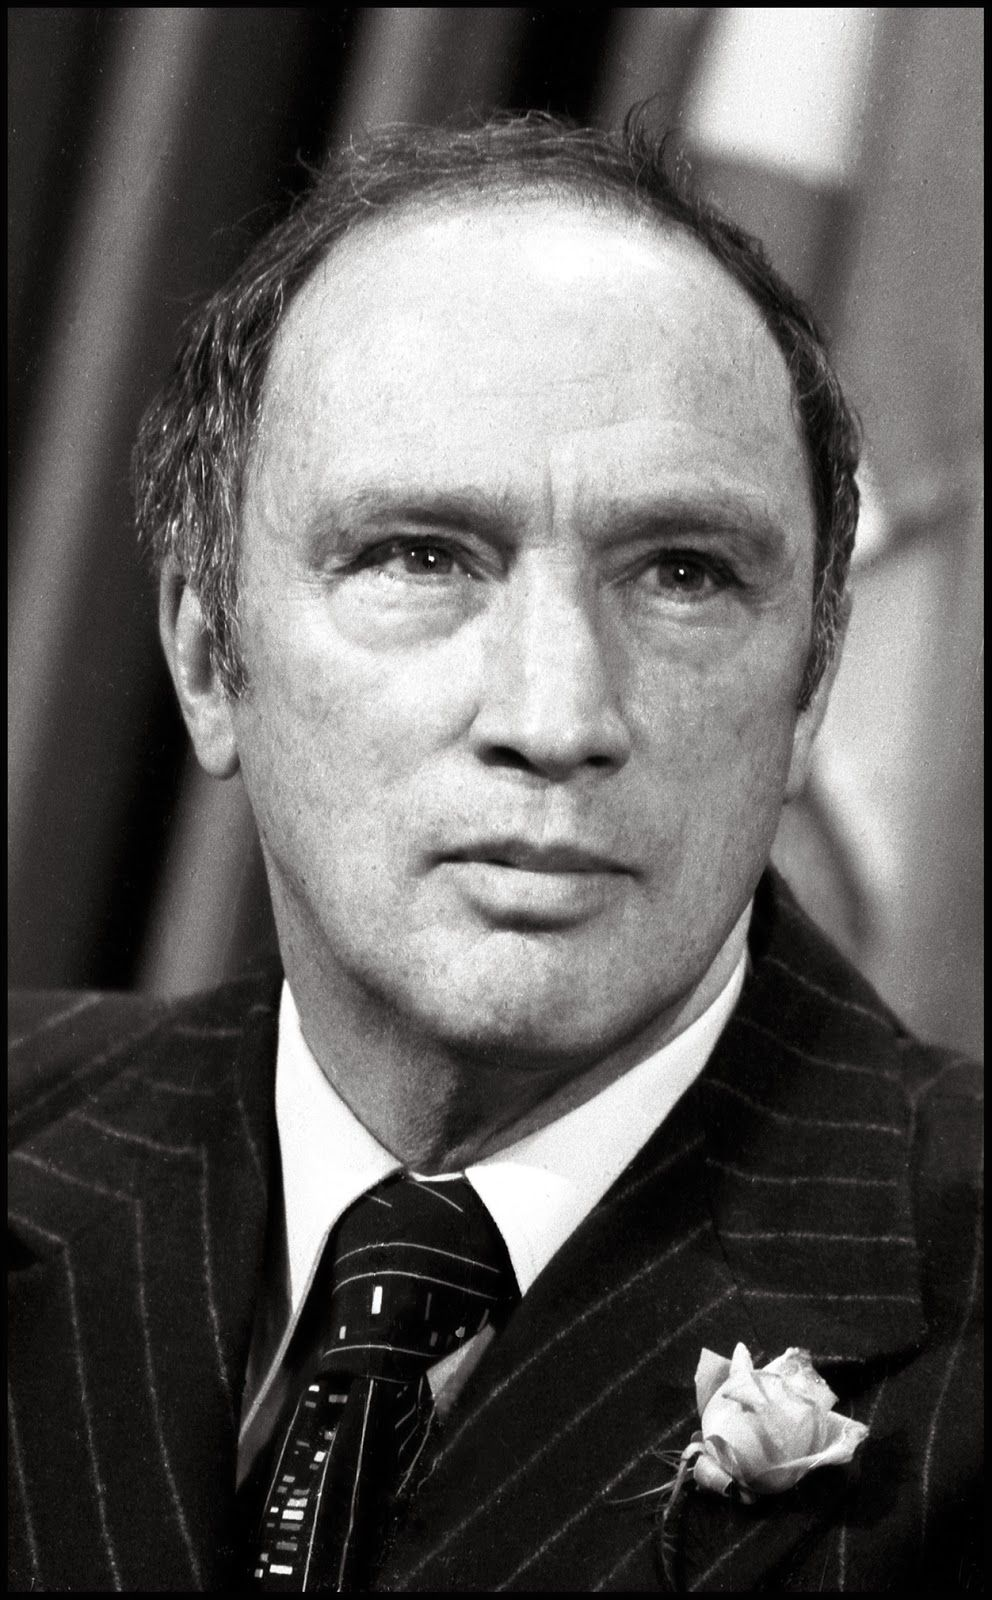 pierre trudeau history essay Pierre trudeau's essay on the quebec referendum, by pierre elliot trudeau, former prime minister of canada part one - part two - part three click here for pierre.